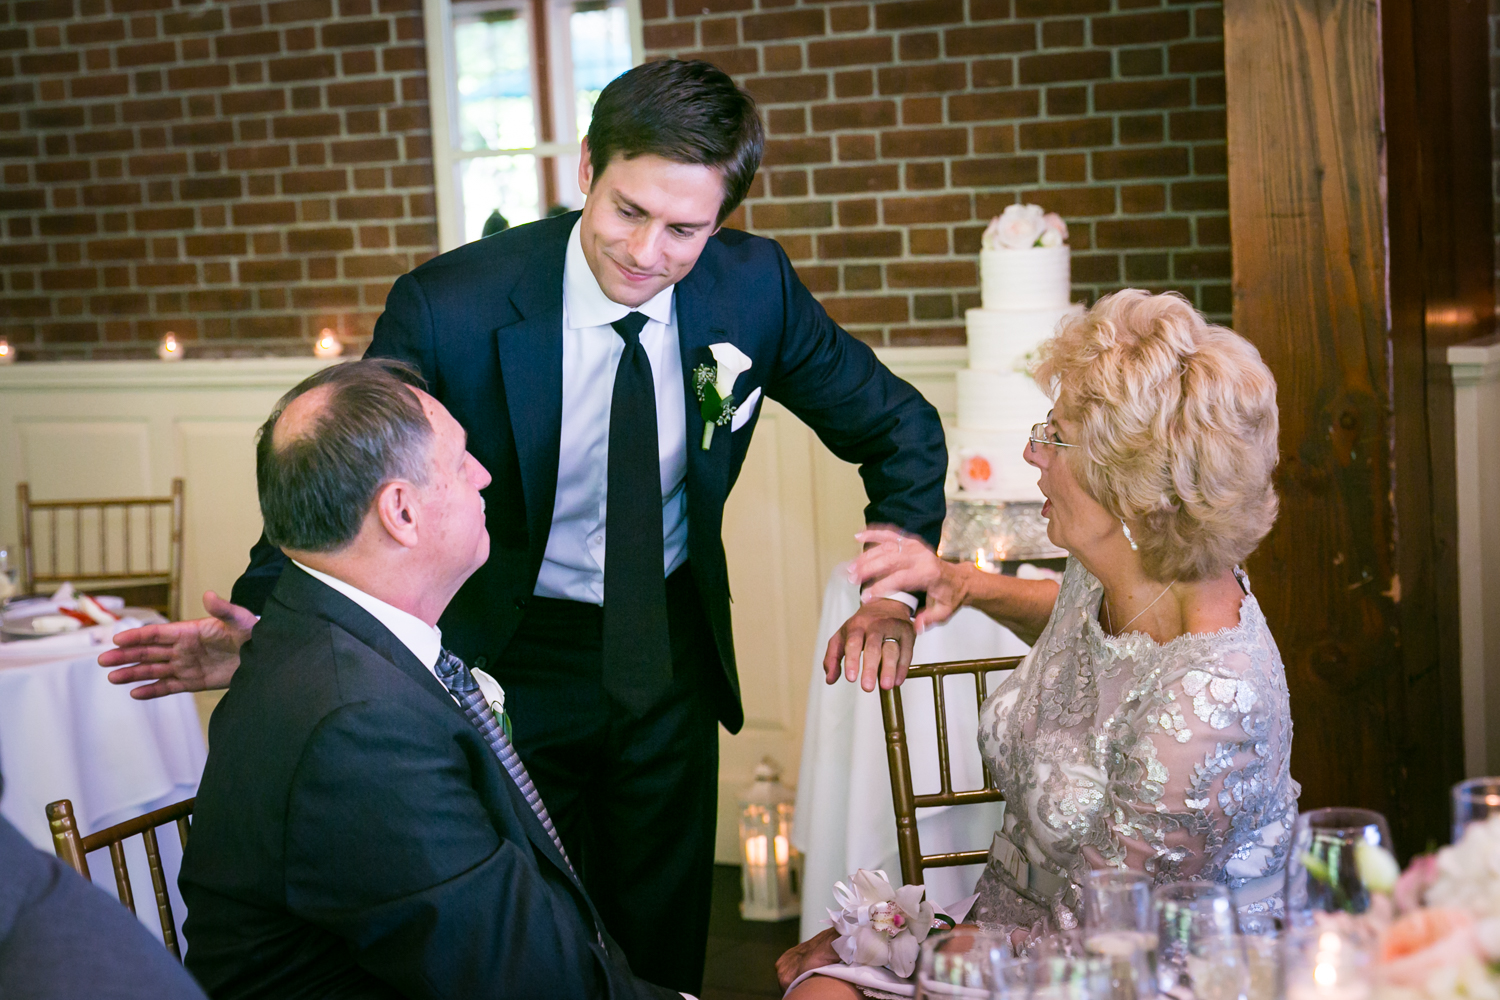 Groom talking with parents seated at table